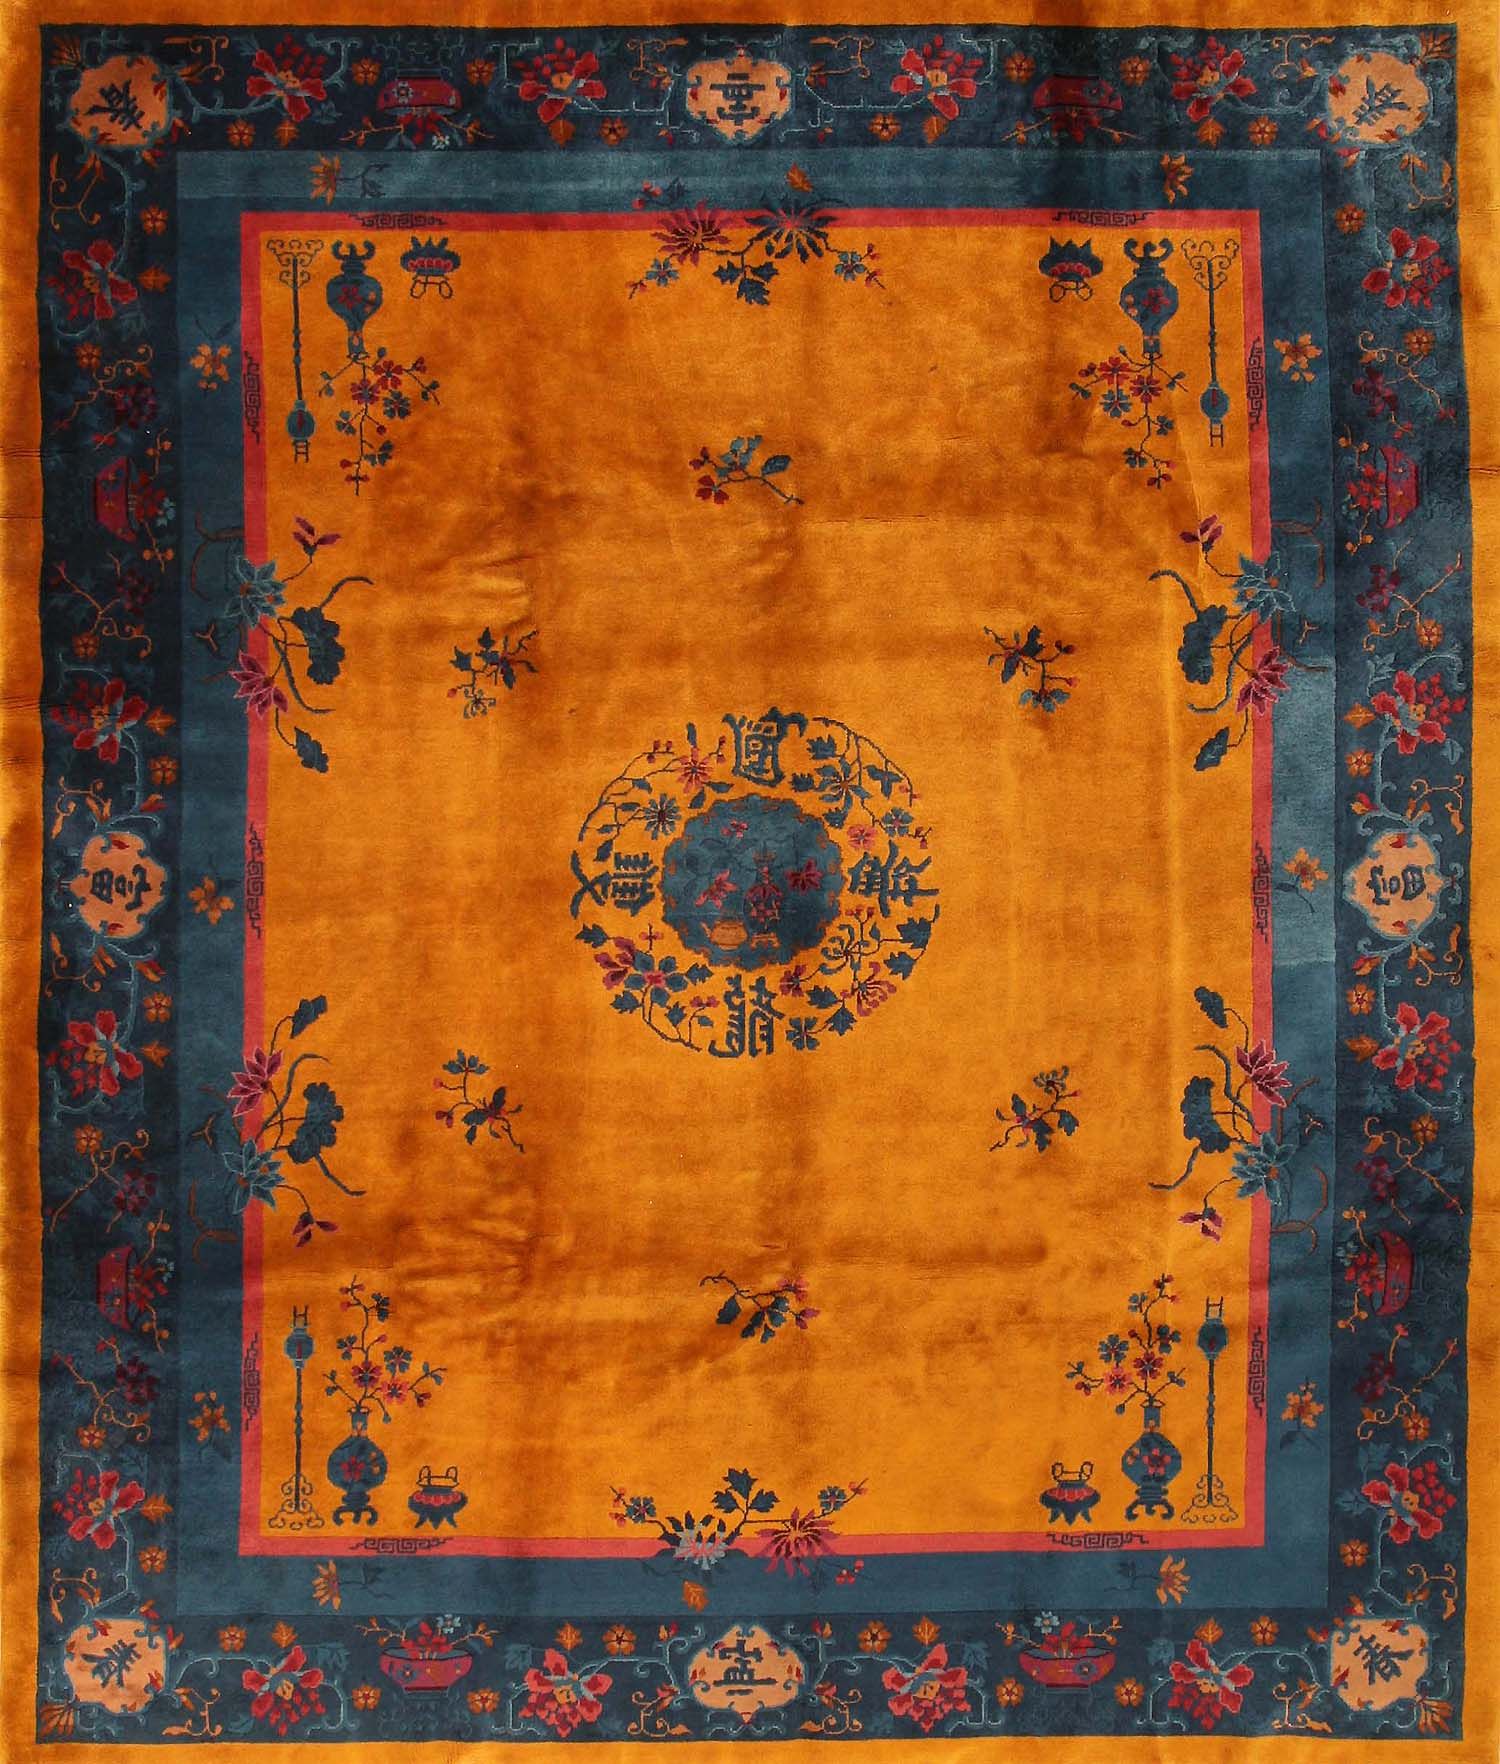 Chinese Rug Dealers: Antique Chinese Oriental Rugs 43747 For Sale